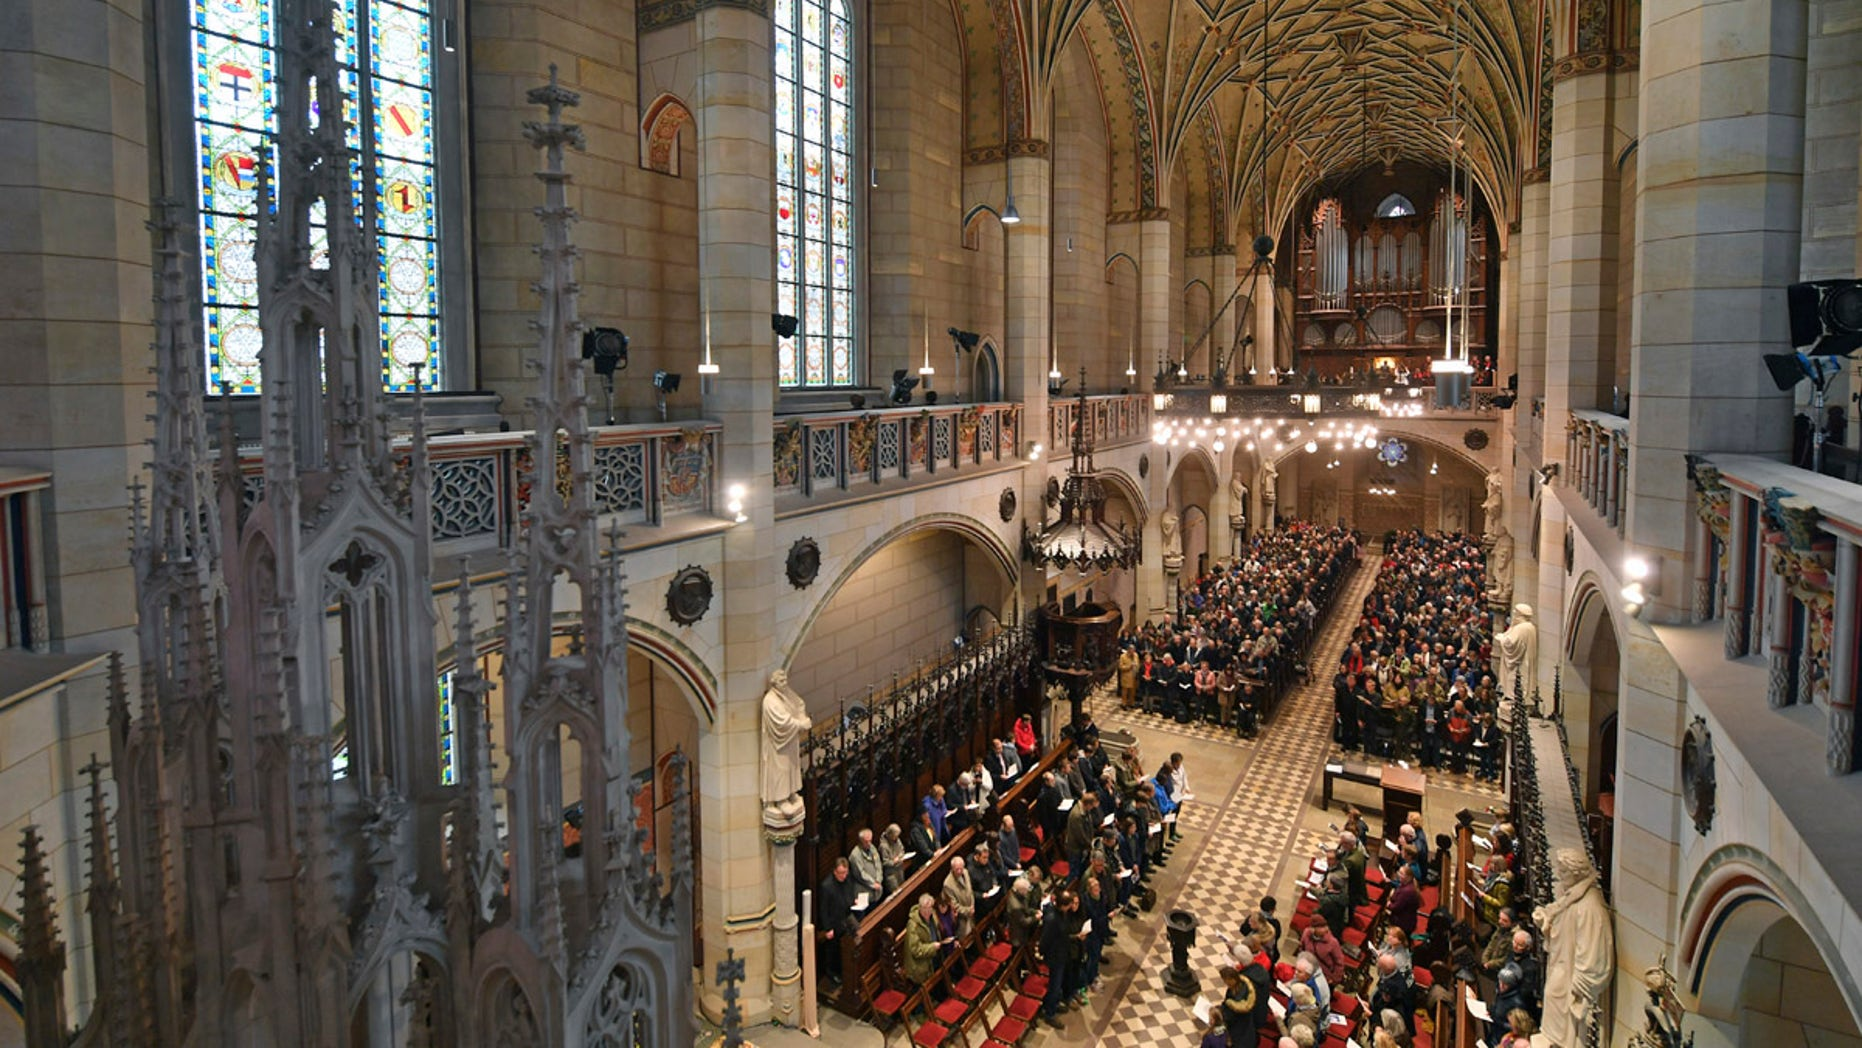 Visitors of the service sit in the All Saints' Church or Castle Church  in Wittenberg, Germany, Tuesday Oct. 31,  2017.  German leaders  will mark the 500th anniversary of the day Martin Luther is said to have nailed his theses challenging the Catholic Church's practice of selling indulgences to a church door, a starting point of the Reformation. (Hendrik Schmidt/dpa via AP)